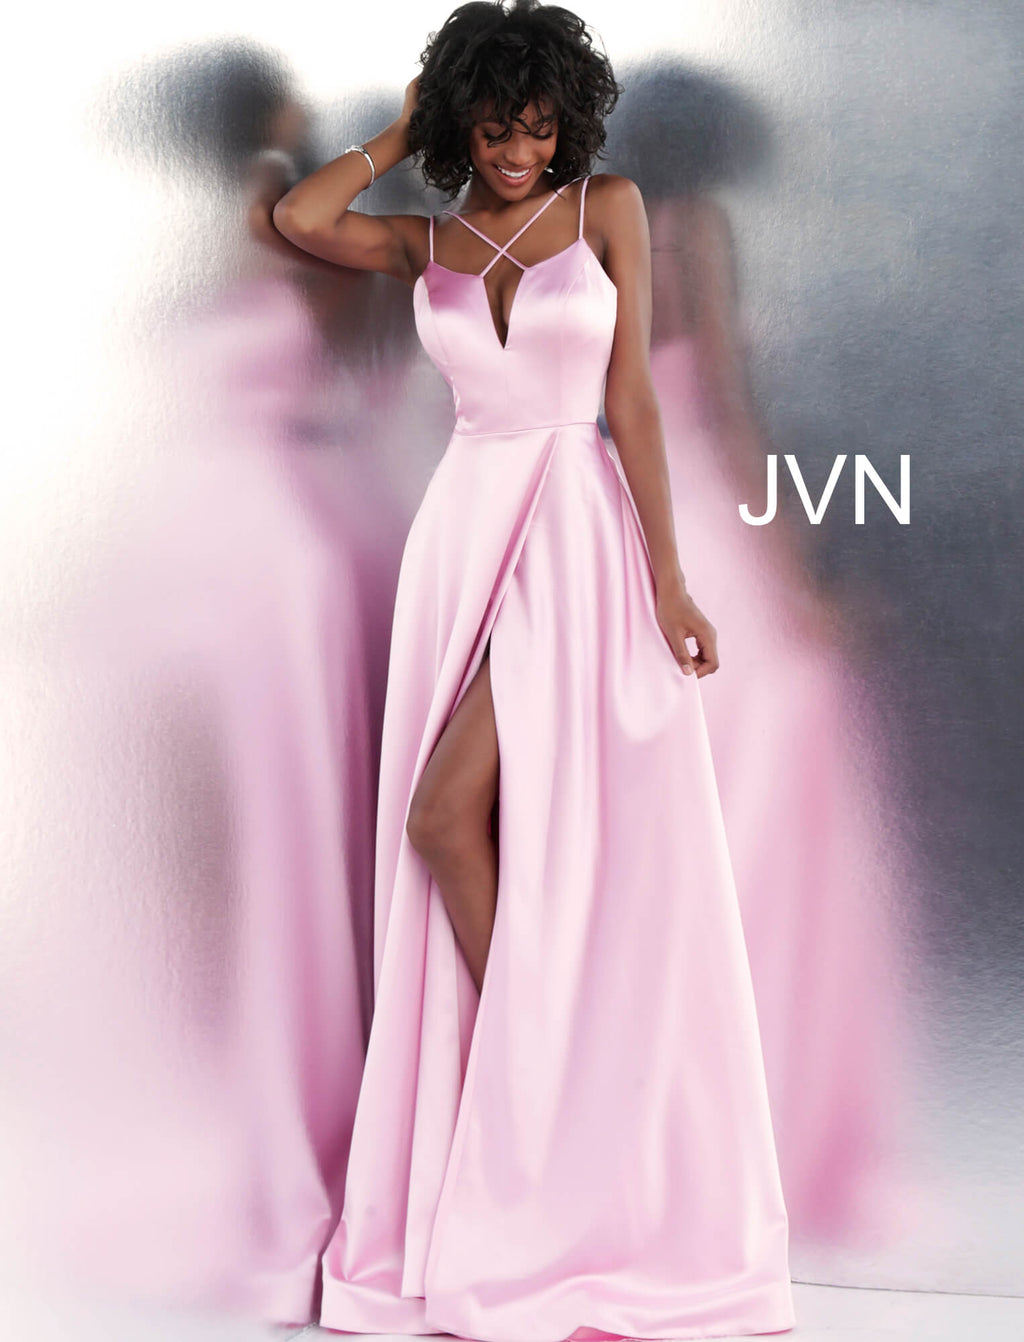 Jovani Pink Satin Gown - Gissings Boutique